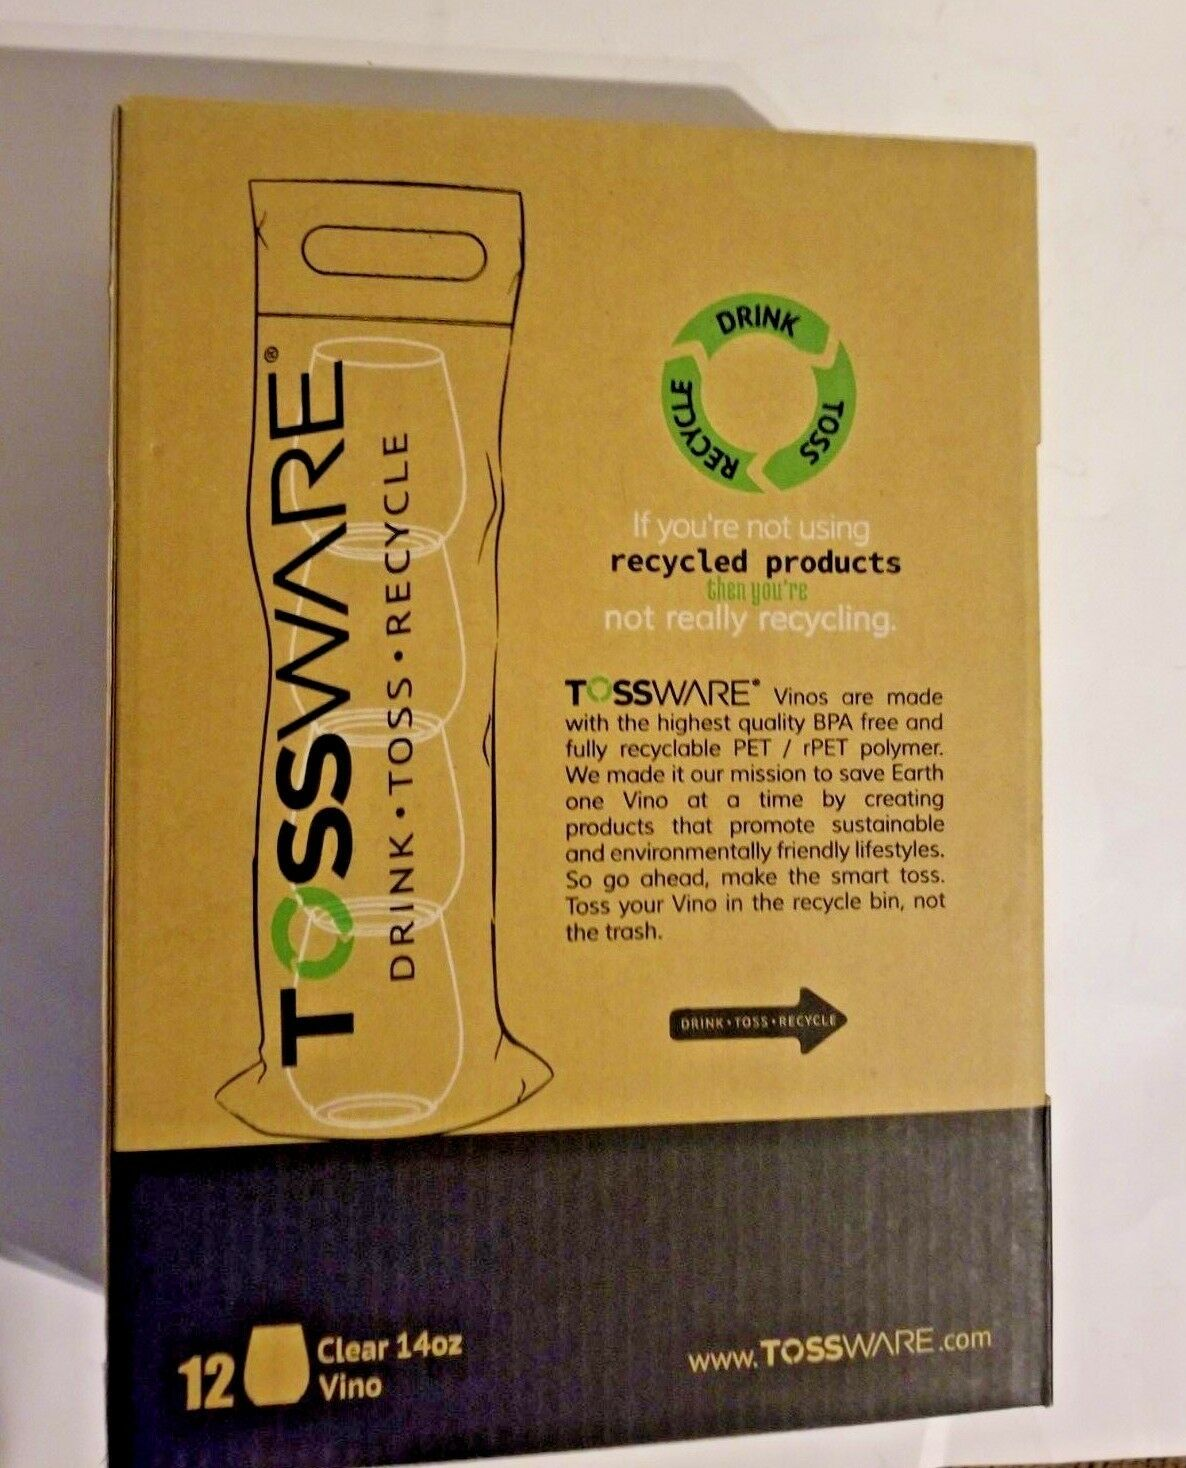 TOSSWARE 14oz Vino - Recyclable Wine Plastic Cup -SET OF 12 - Drink-Toss-Recycle image 3